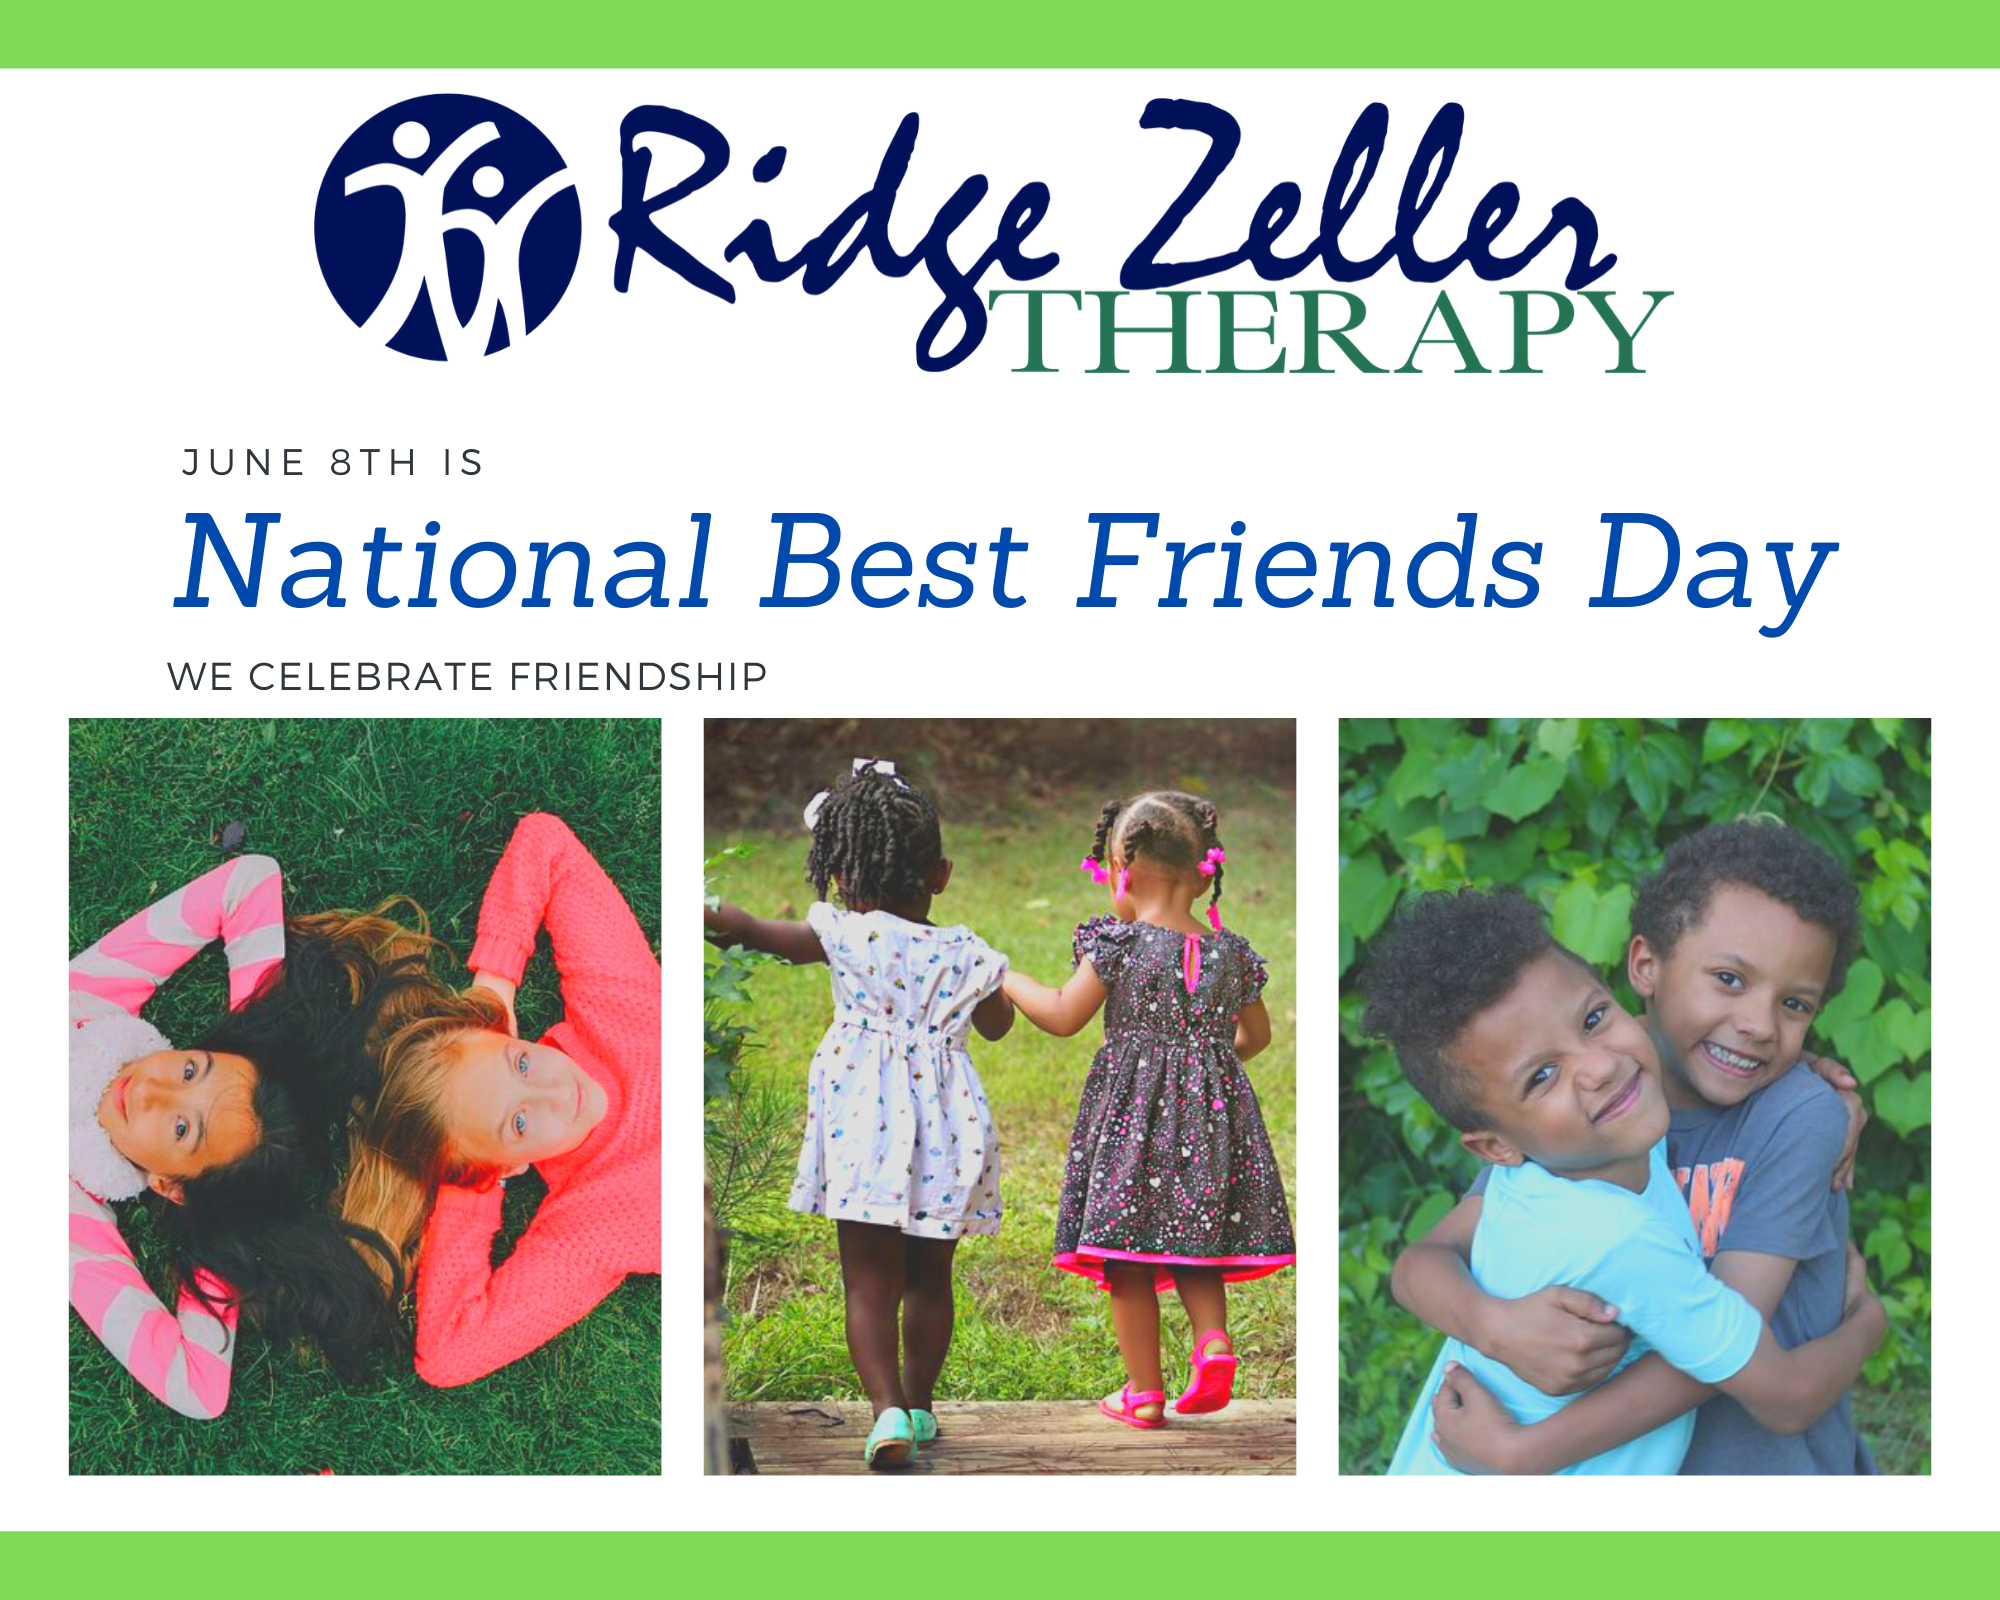 Today Is National Best Friends Day We Celebrate Friendship Today And Always Friendship Slp Ot Occup In 2020 National Best Friend Day Best Friend Day Friends Day